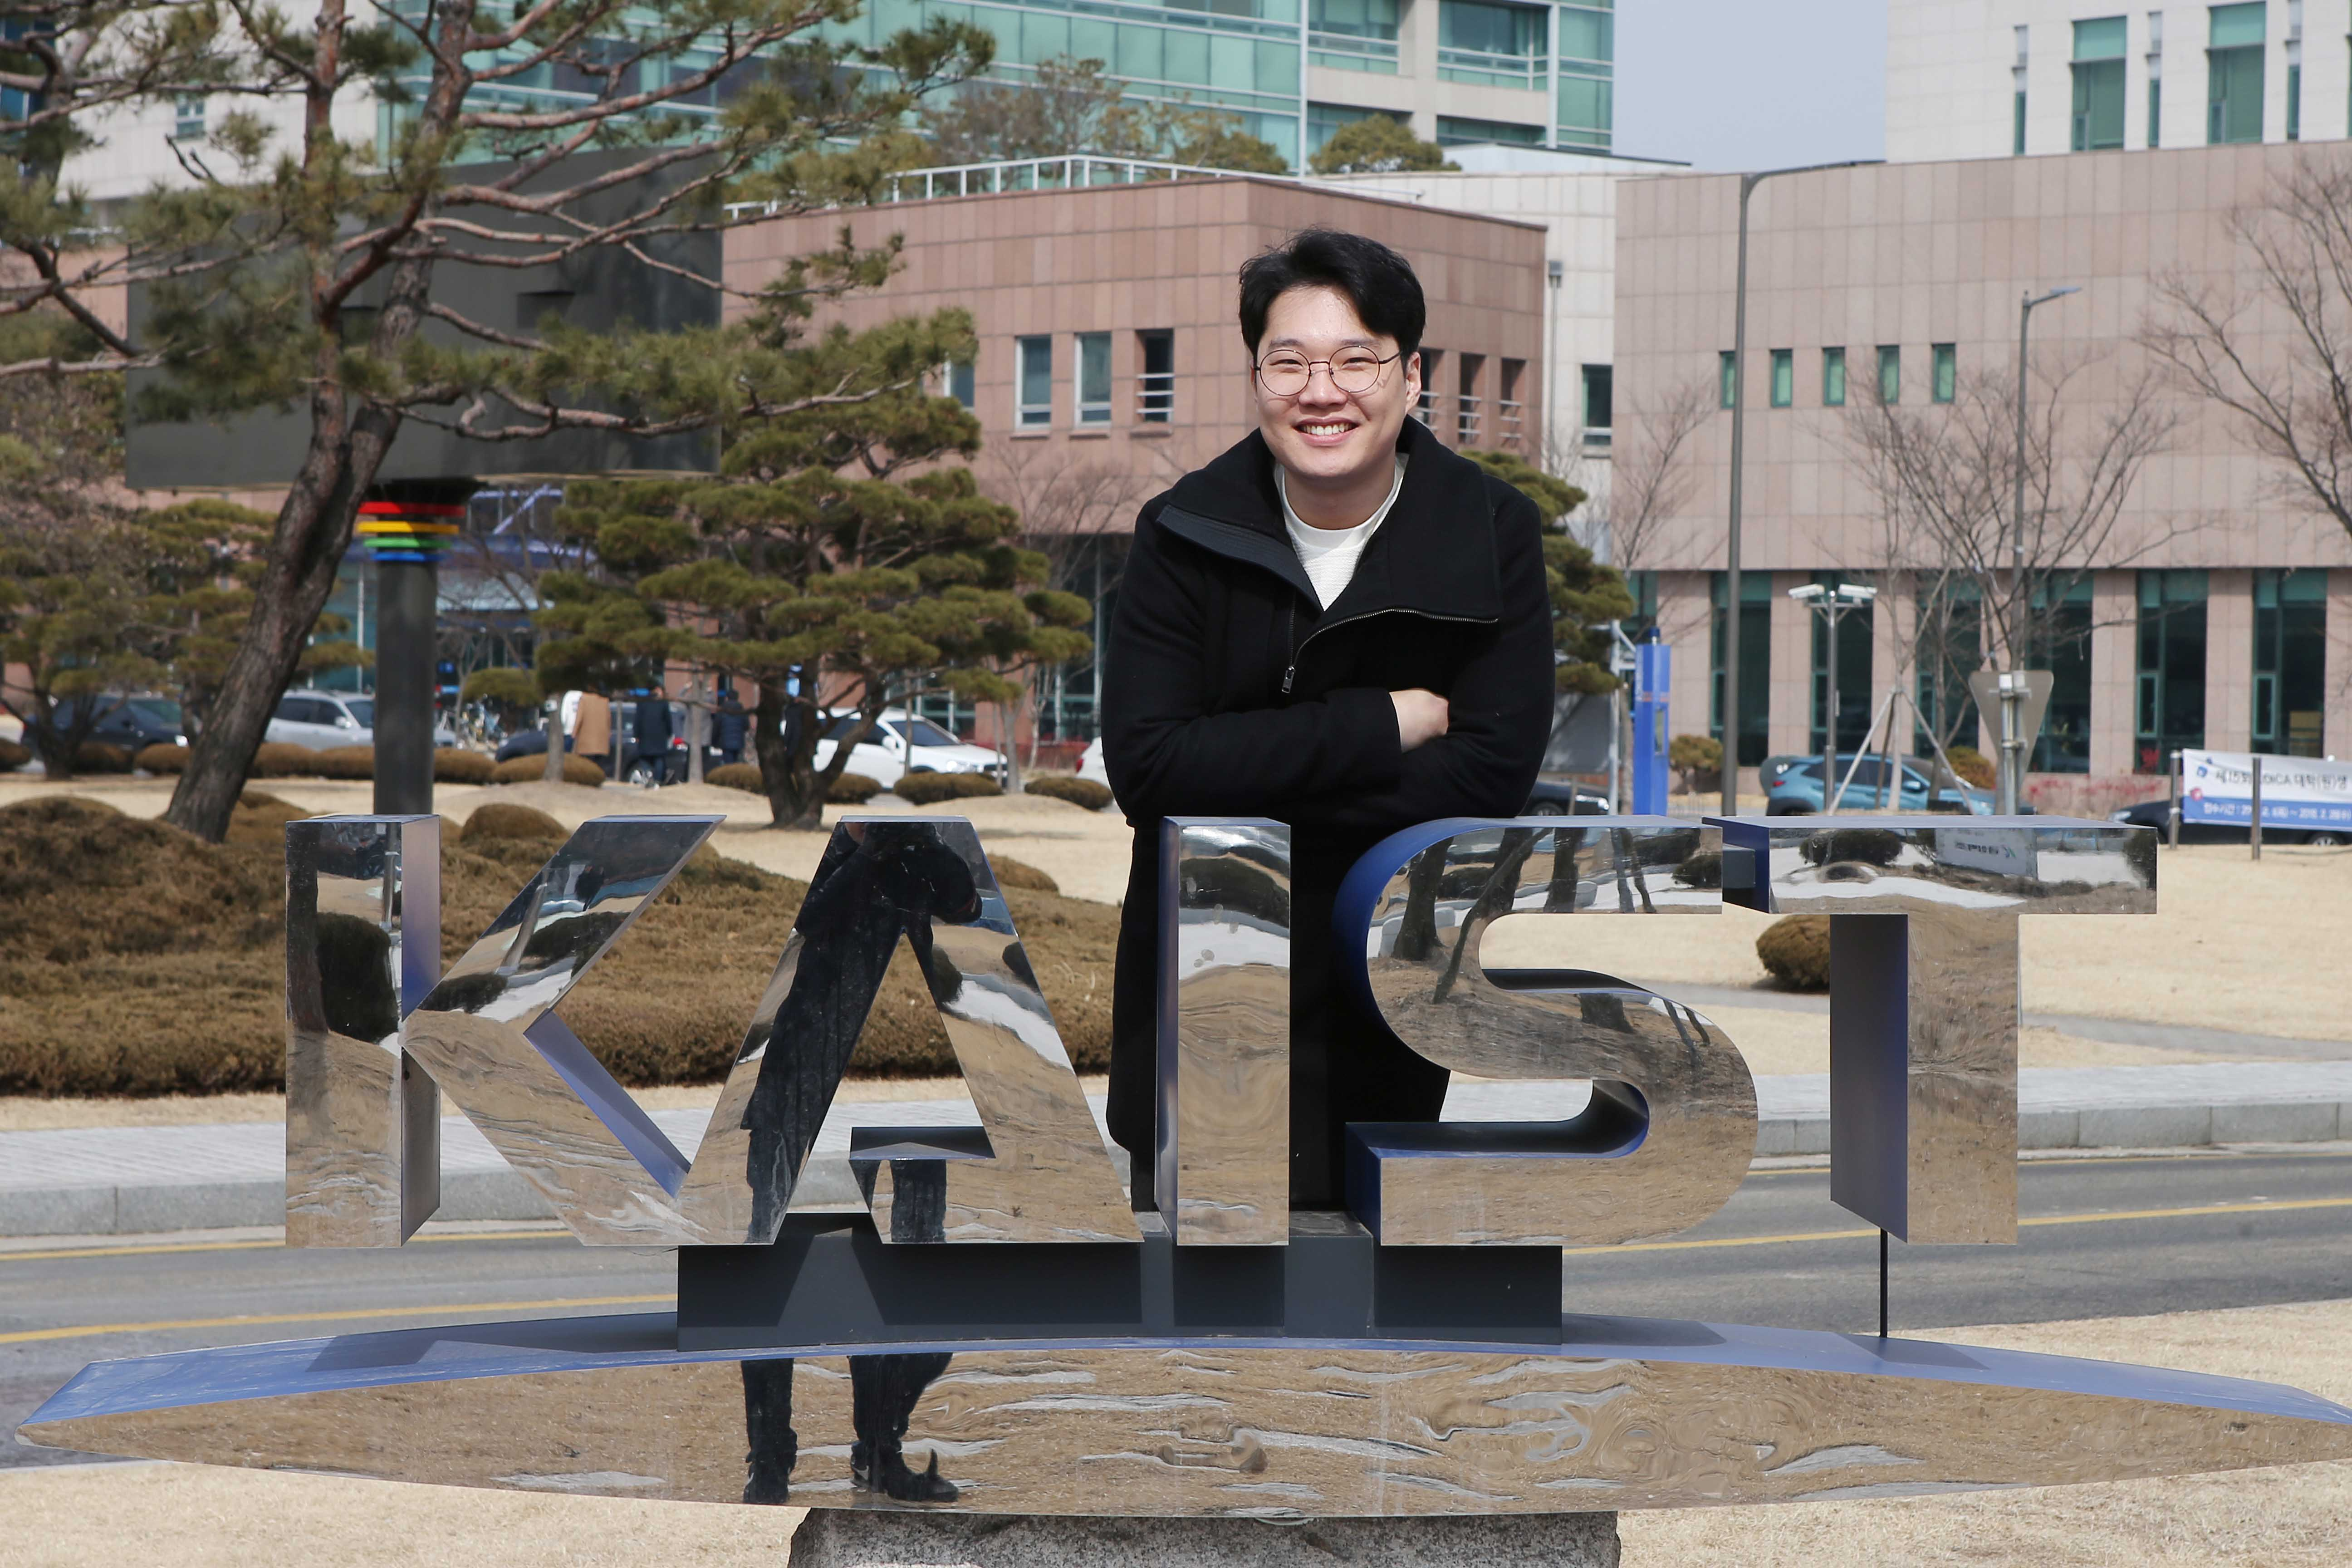 Soul-Searching & Odds-Defying Determination: A Commencement Story of Dr. Tae-Hyun Oh 이미지1